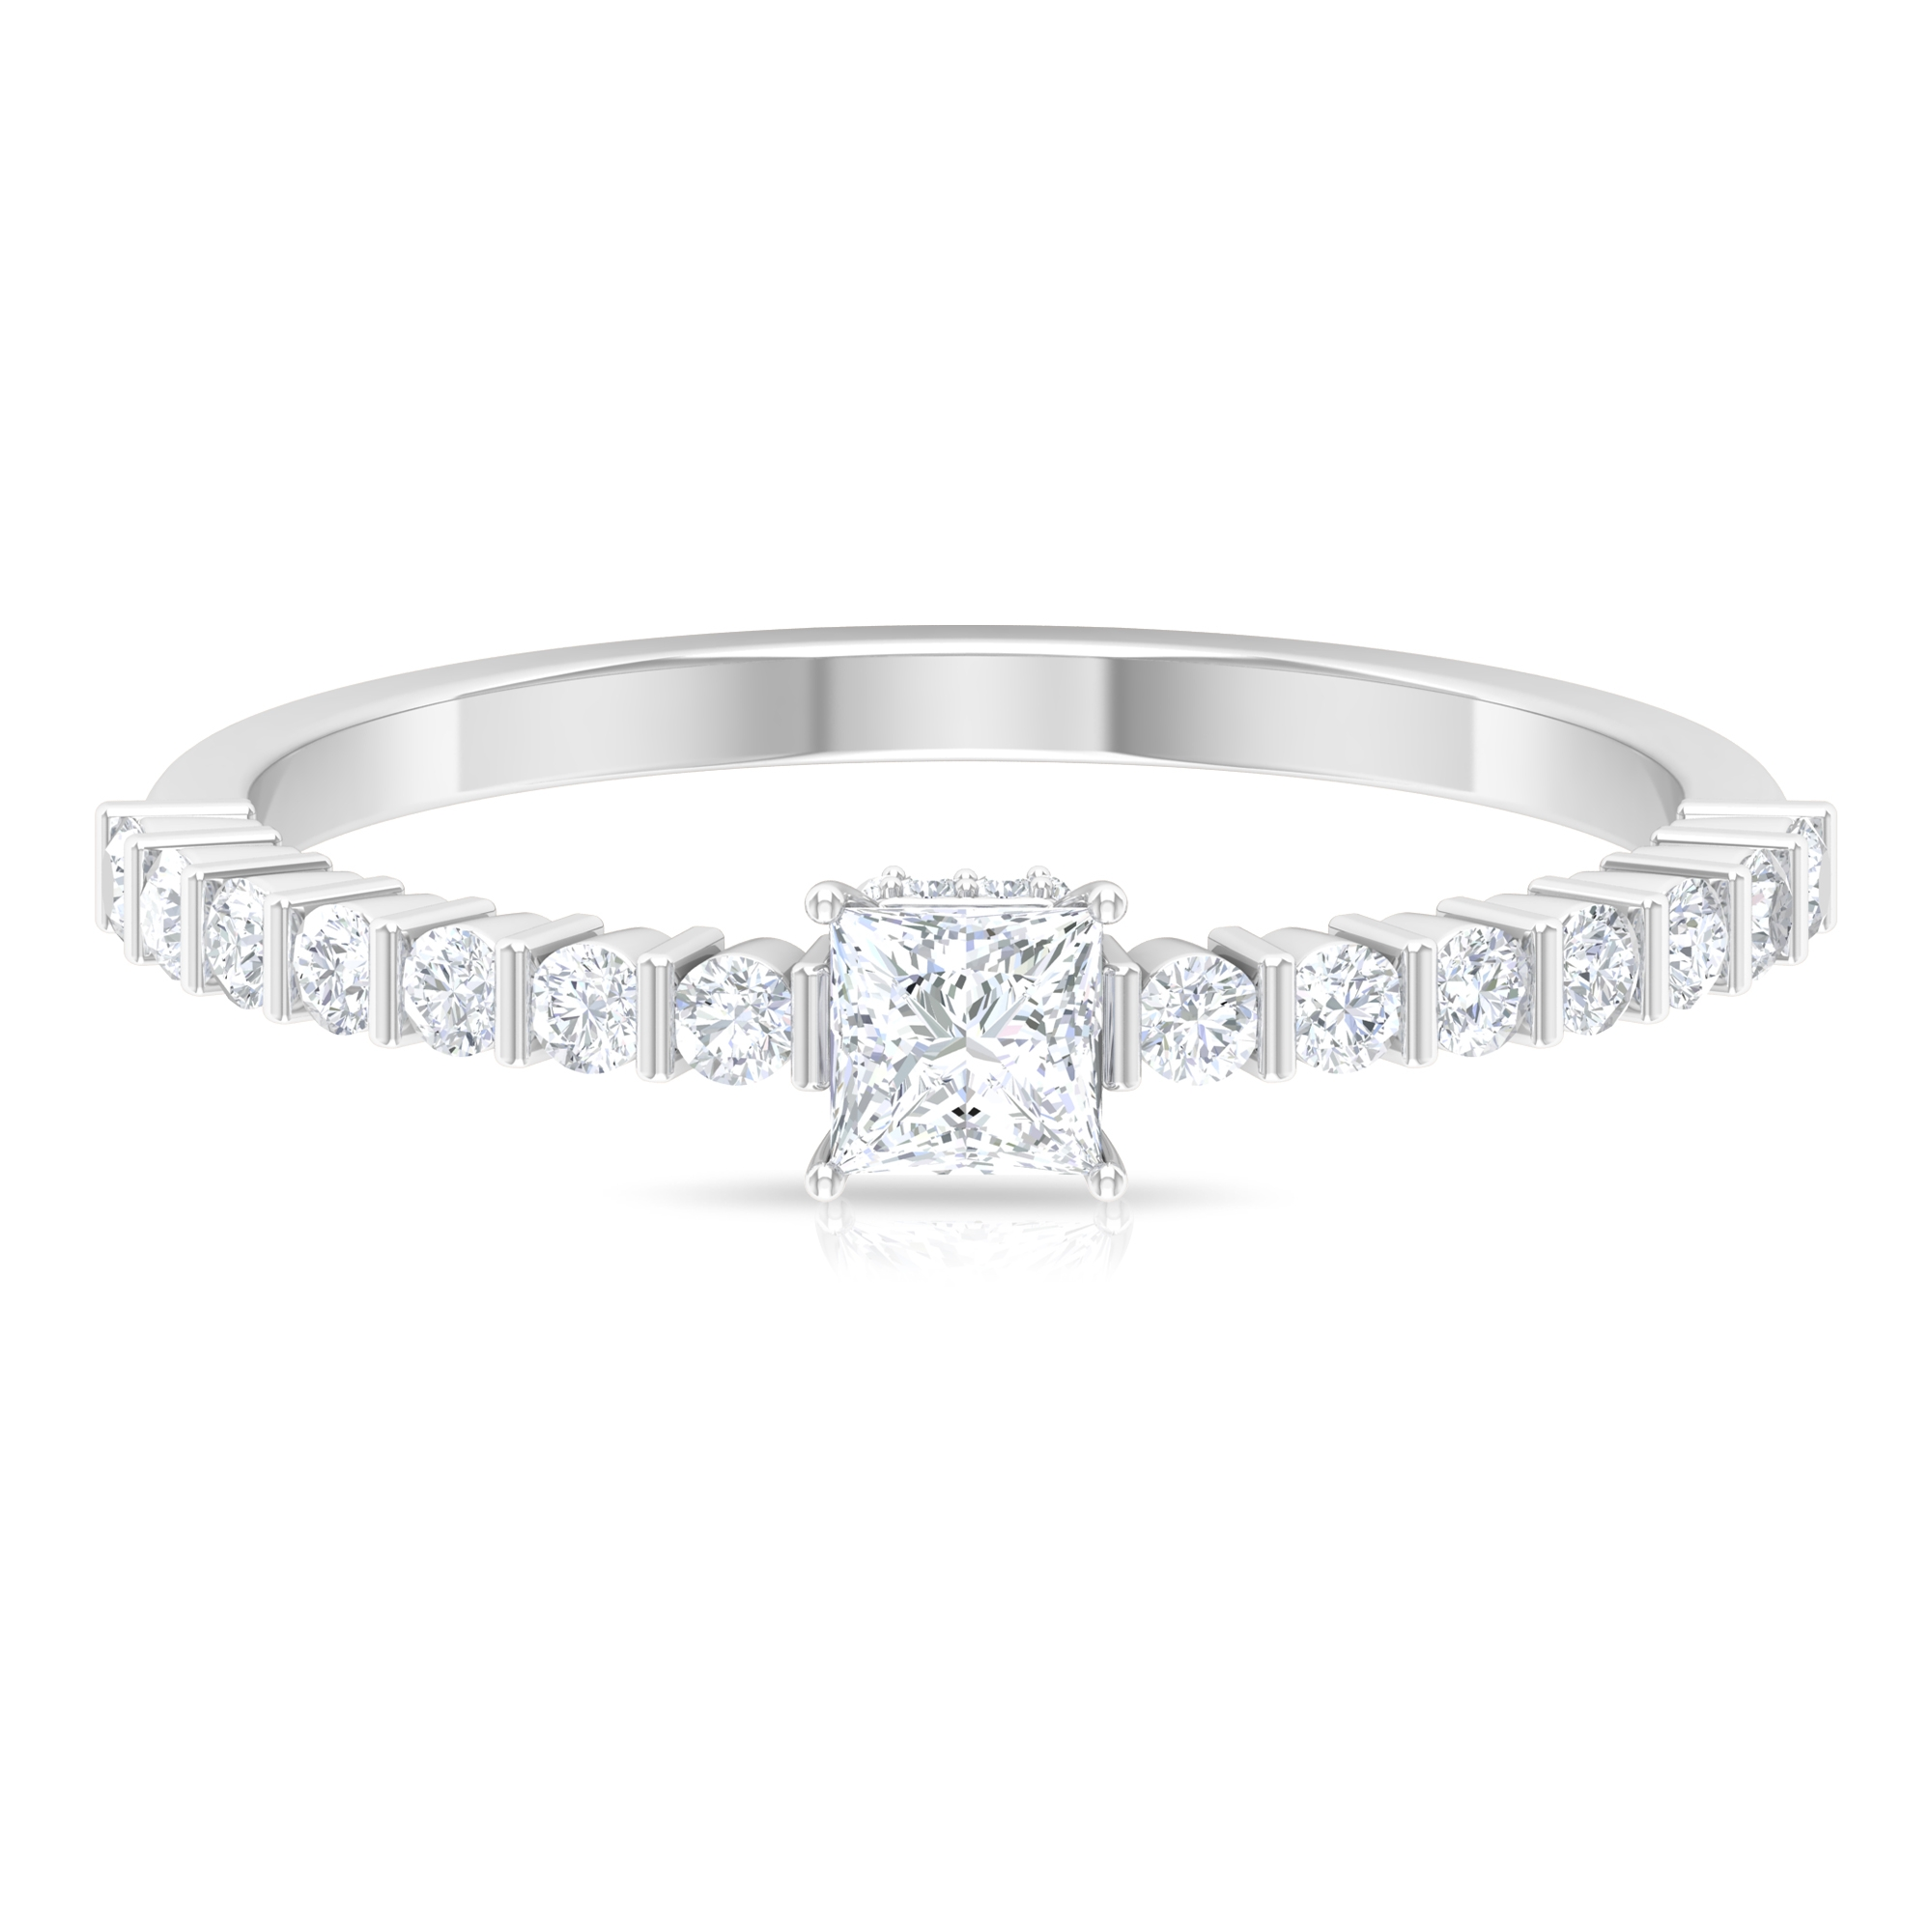 1/2 CT Princess Cut Diamond Solitaire and Hidden Halo Ring with Bar Set Side Stones